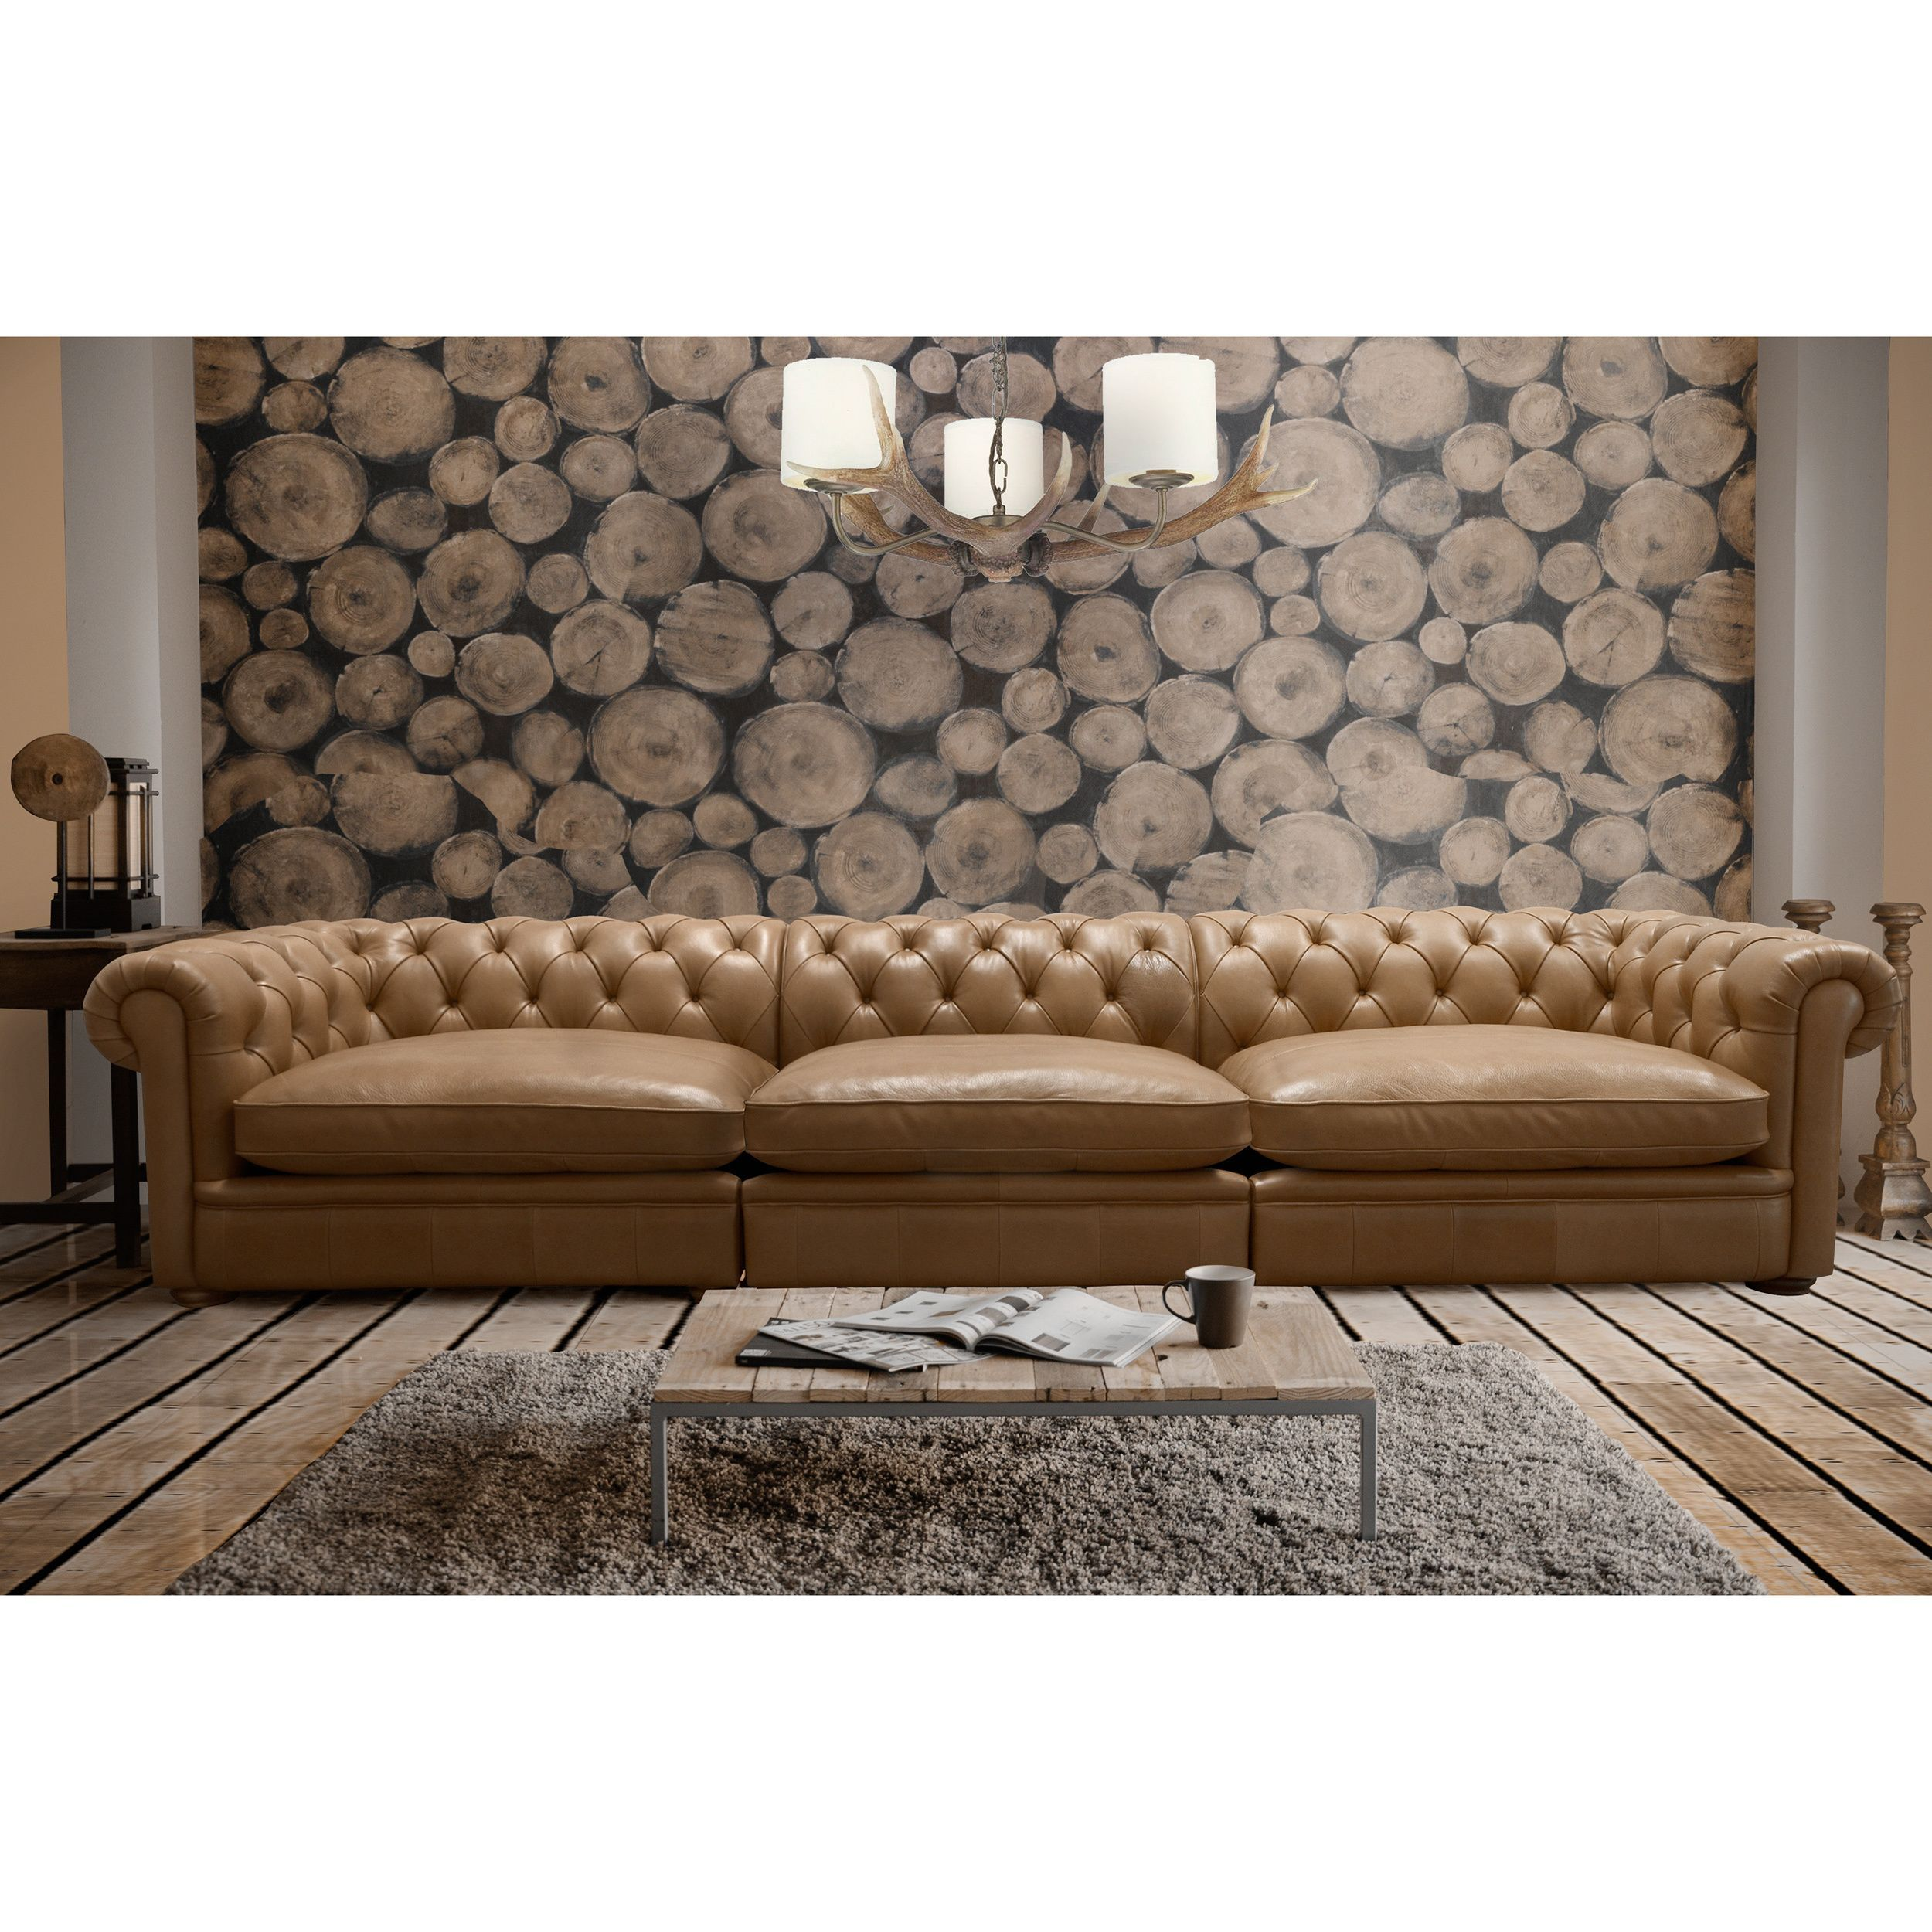 Abraham 142 inch 3 piece Aurora Honey Leather Sofa Set Overstock